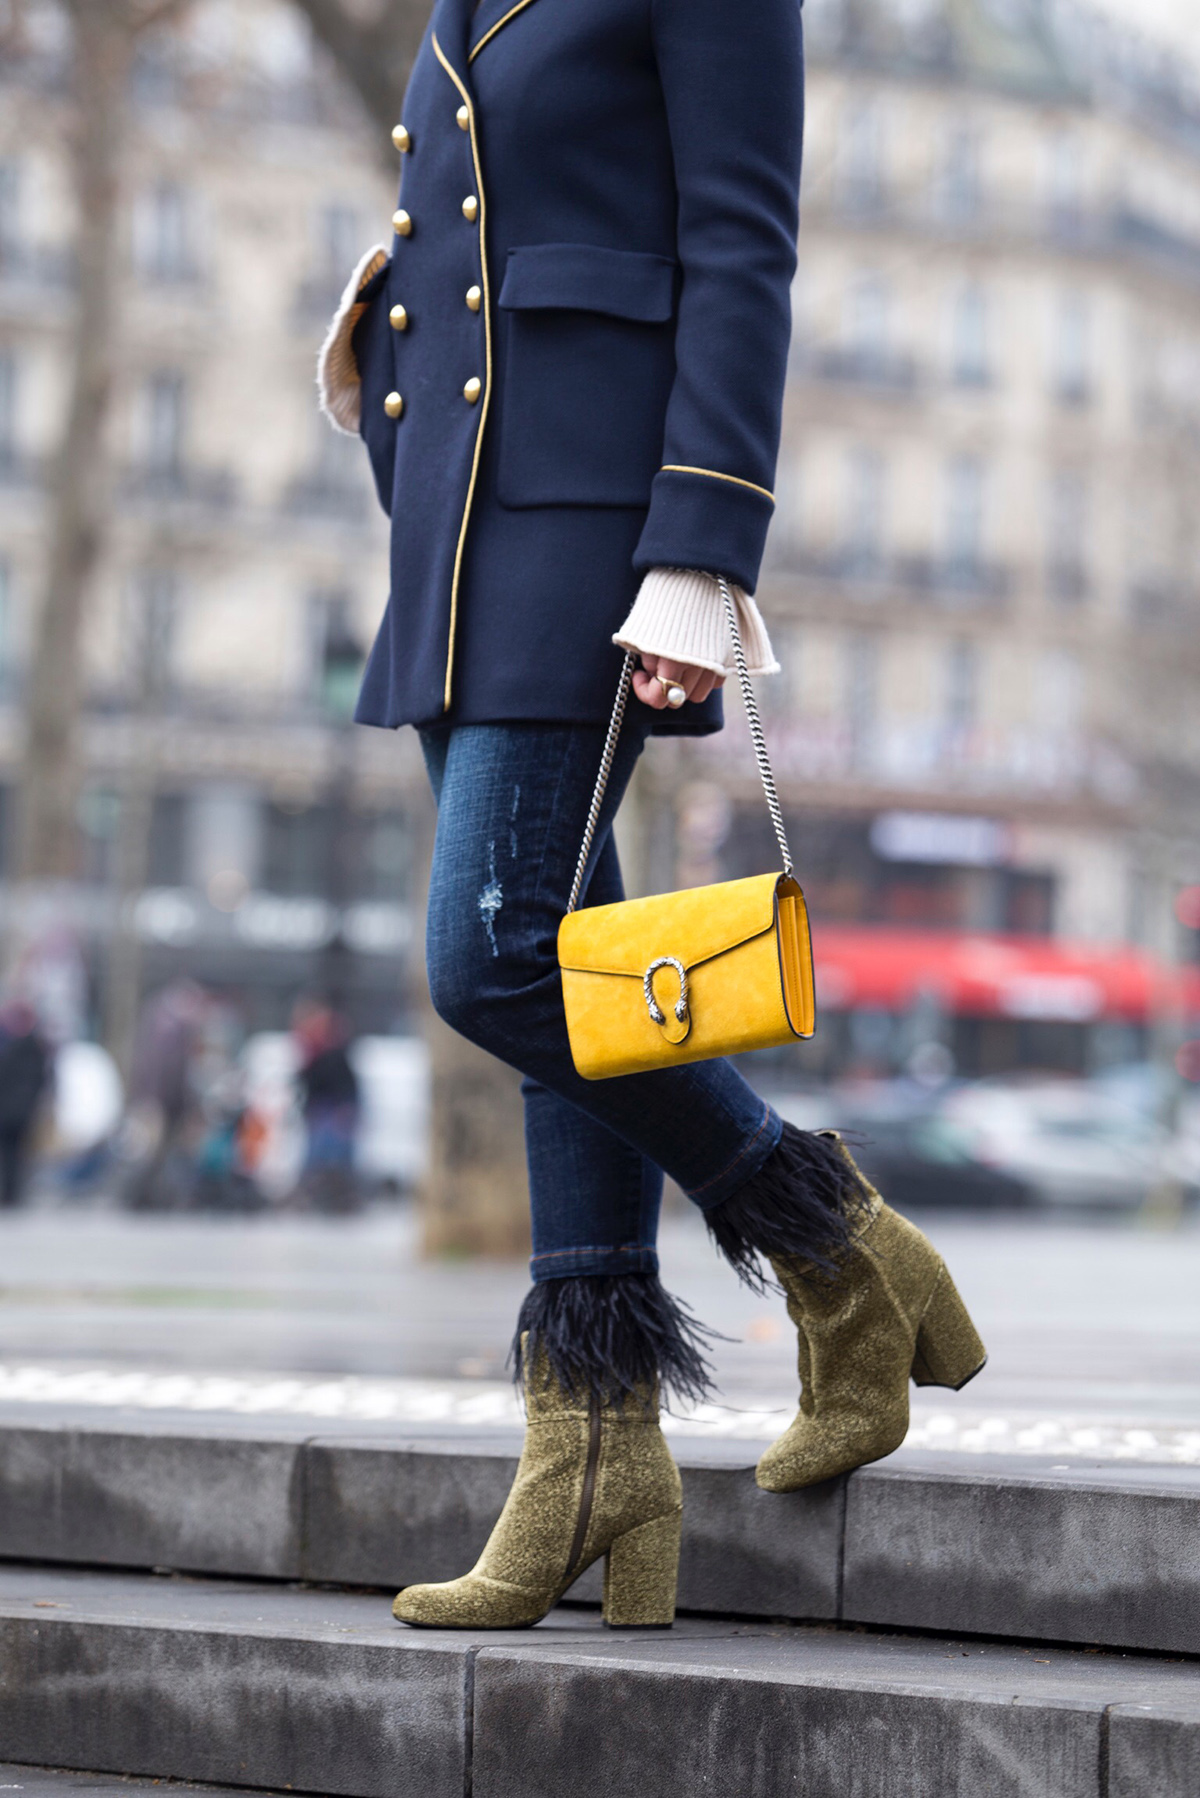 Stella Asteria fashion & lifestyle blogger wearing Pinko military coat and Gucci Dionysus bag